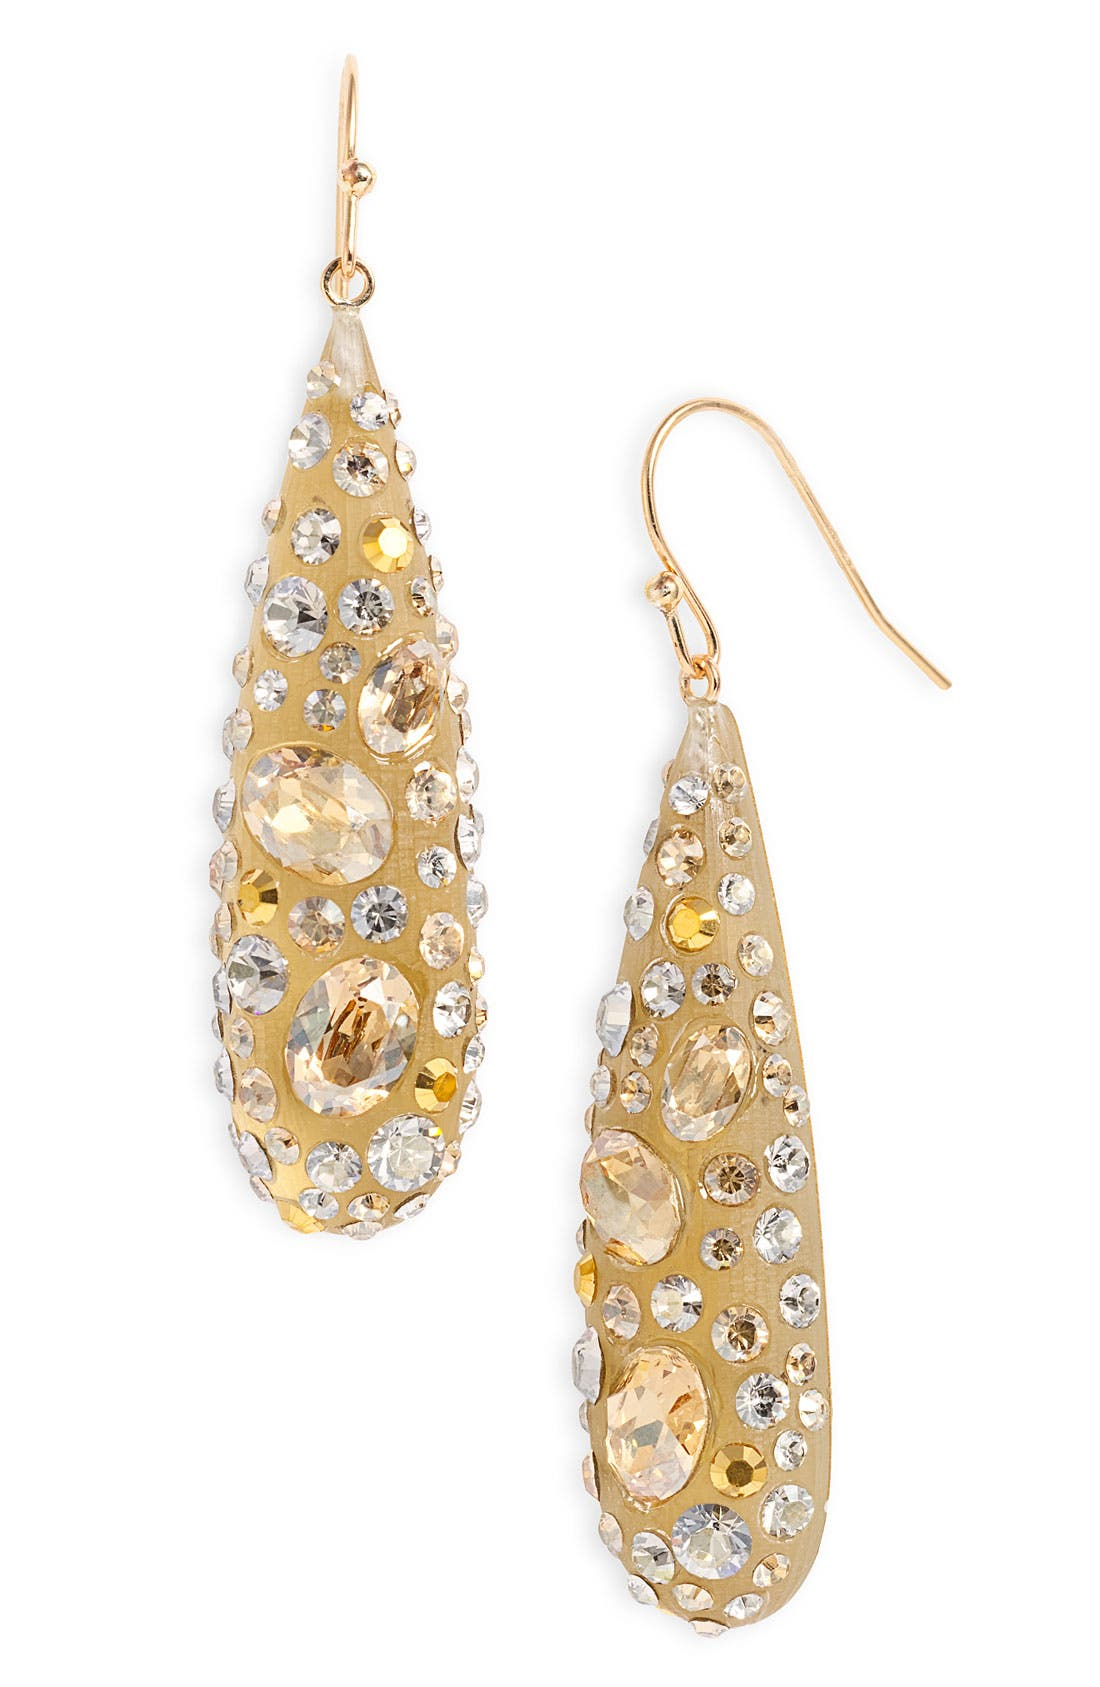 Main Image - Alexis Bittar 'Dust' Teardrop Earrings (Nordstrom Exclusive)